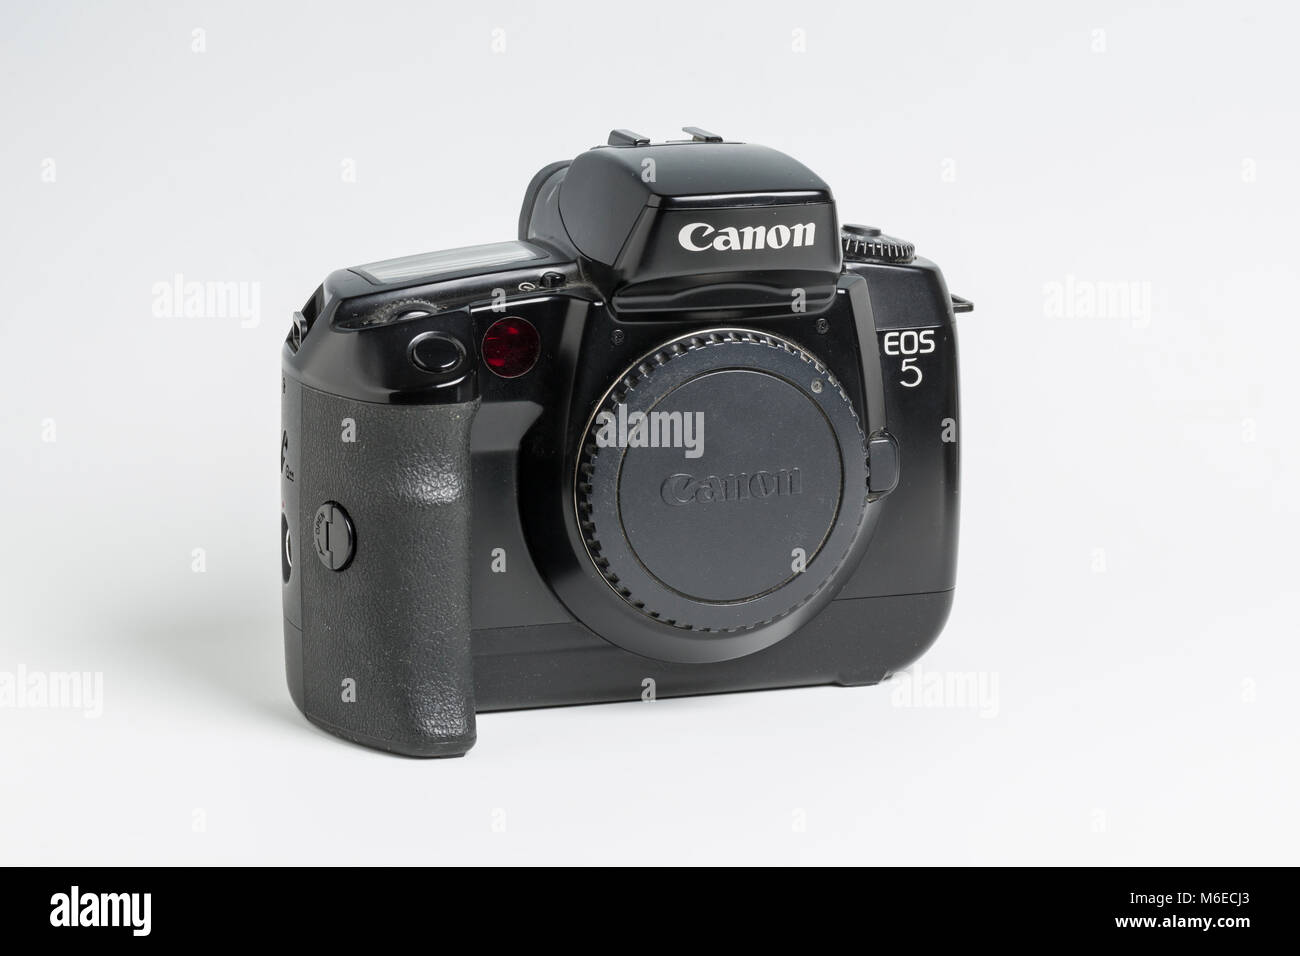 Canon EOS 5 camera with eye-controlled focussing.  1992 - 1998.  Known as EOS A2 and A2e in the USA. - Stock Image